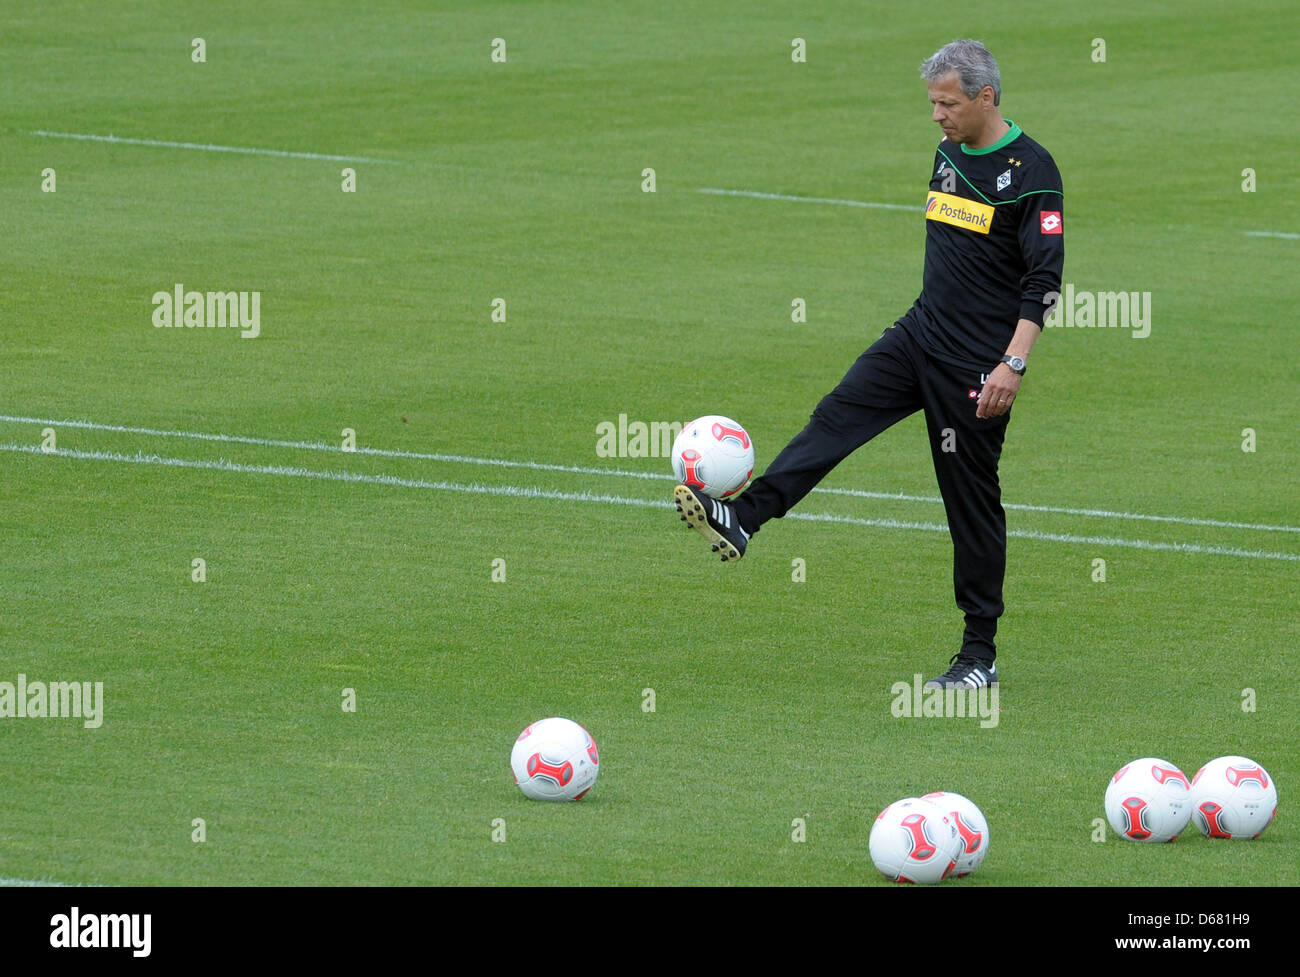 Moenchengladbach's head coach Lucien Favre plays the ball during the start of training after the summer break - Stock Image